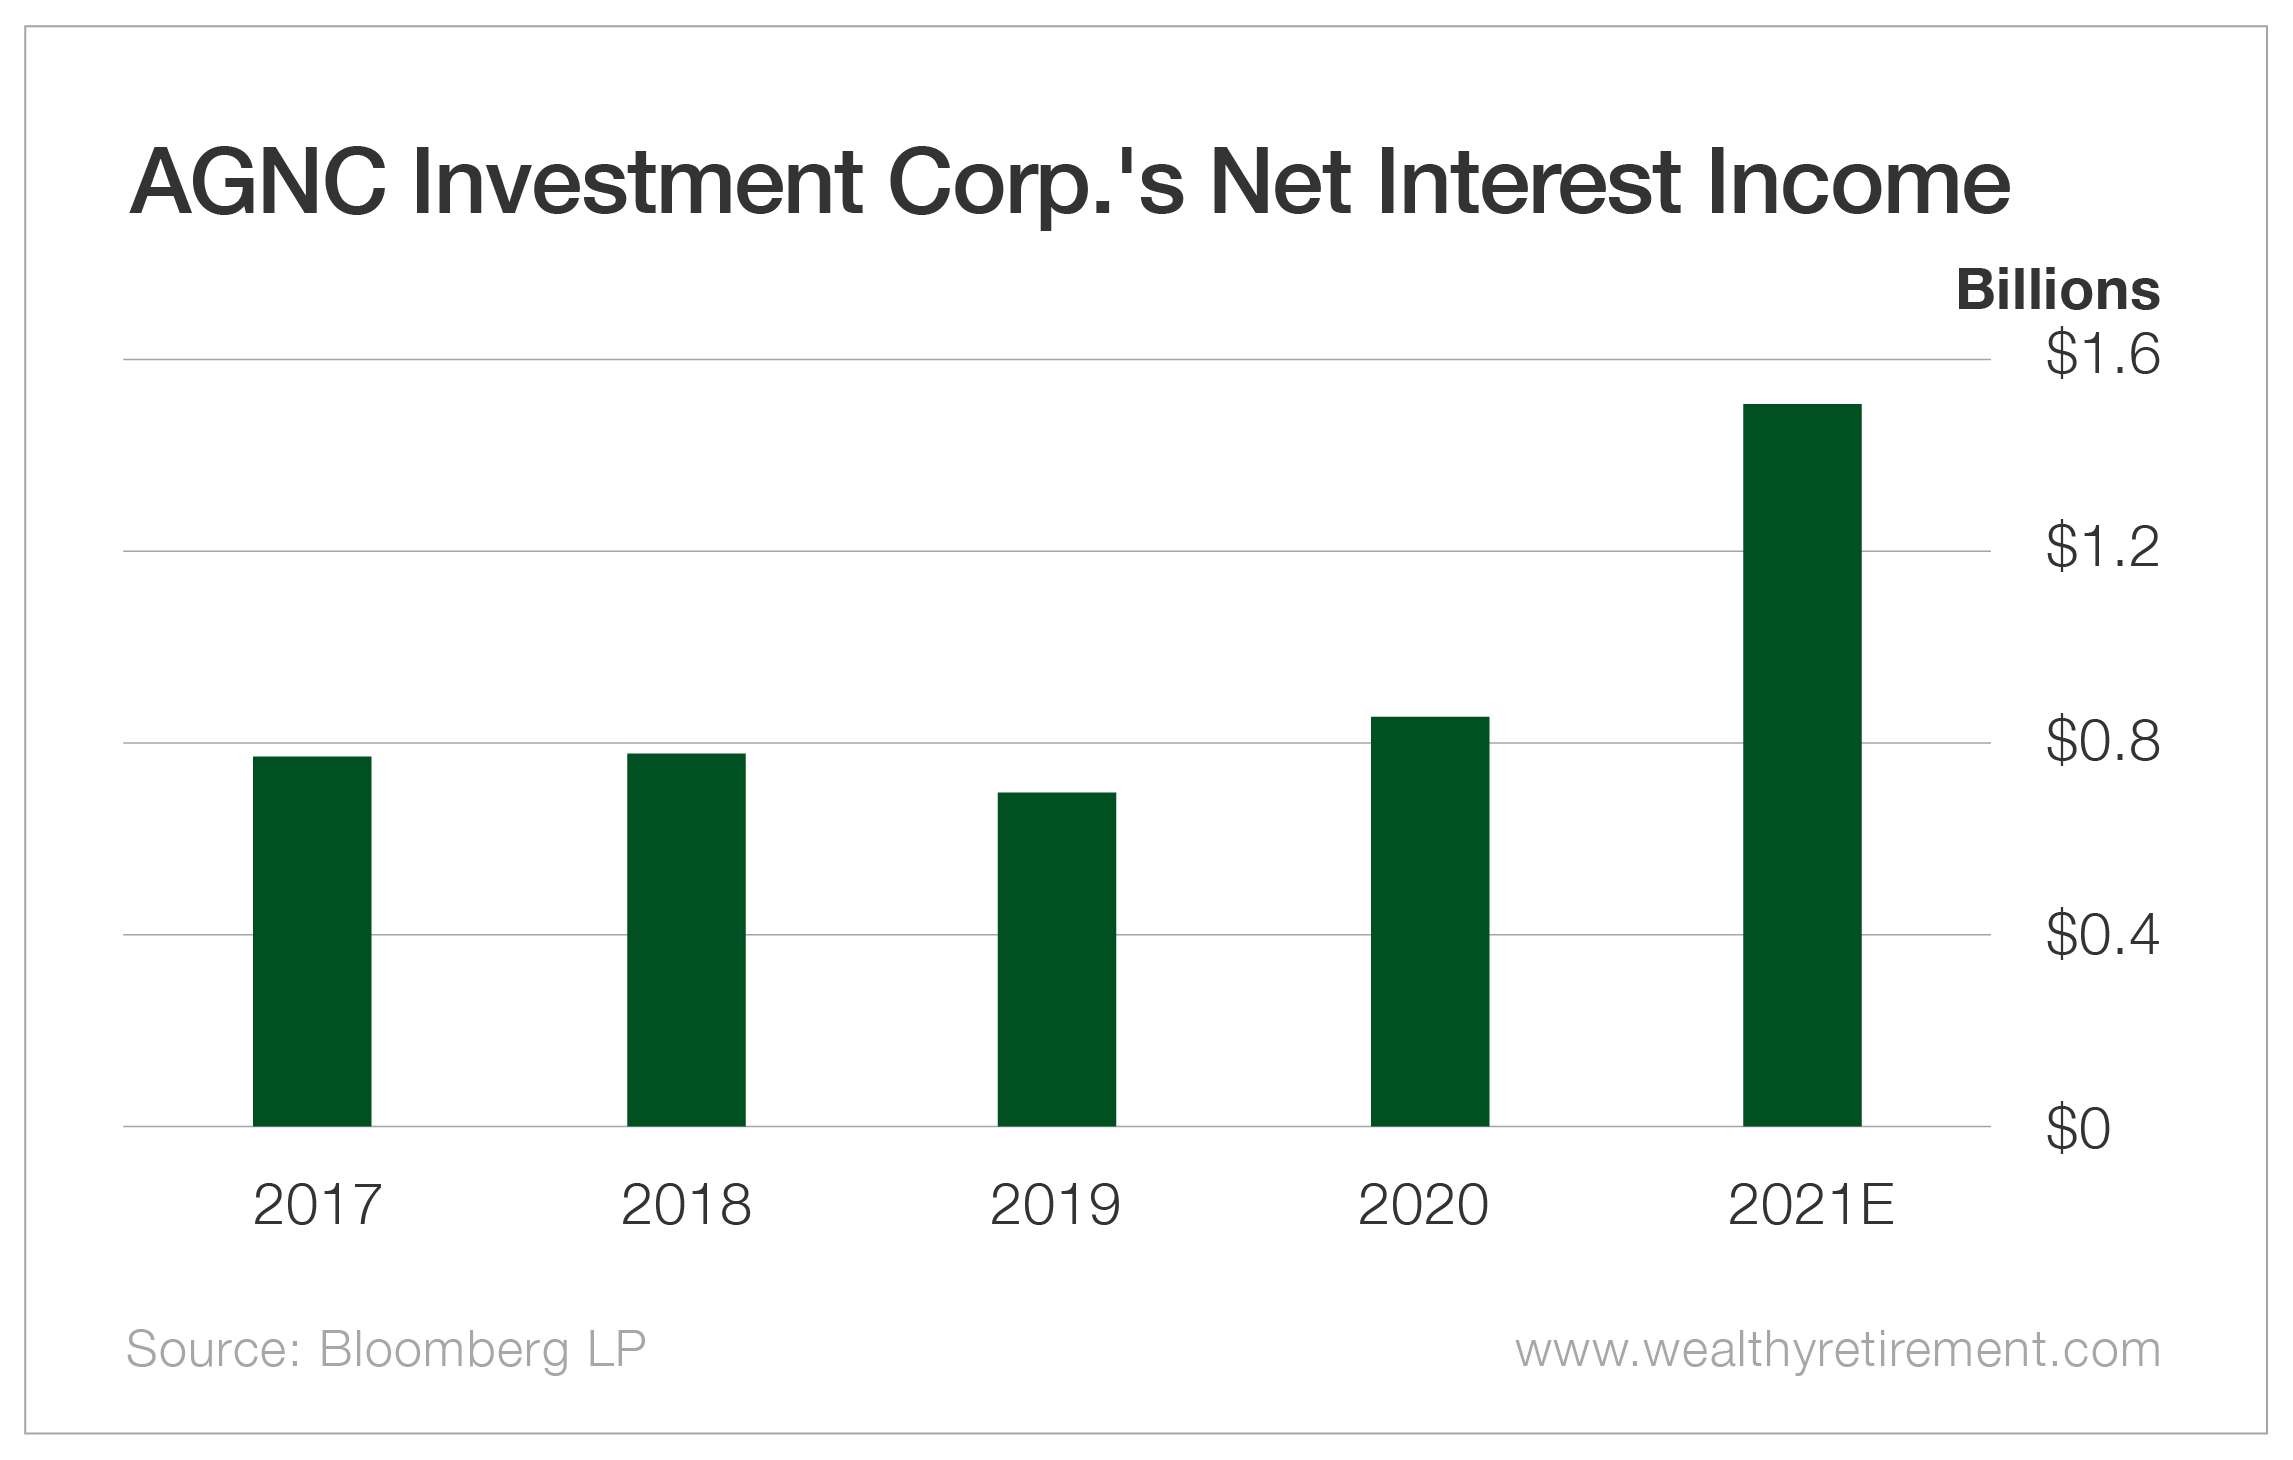 AGNC Investment Corp.'s Net Interest Income